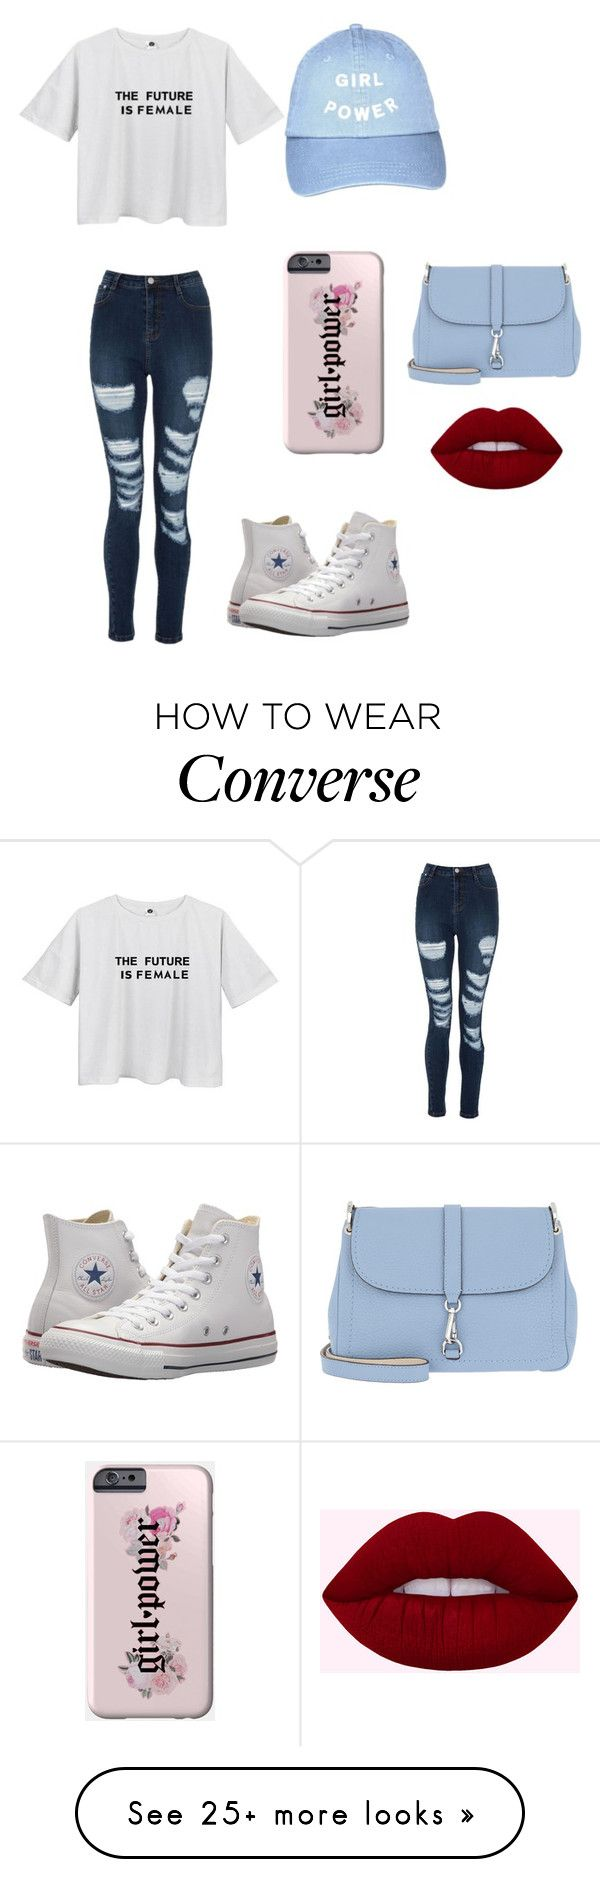 """Untitled #1"" by mshapiro04 on Polyvore featuring Converse, Bogner, womensHistoryMonth, pressforprogress and GirlPride"